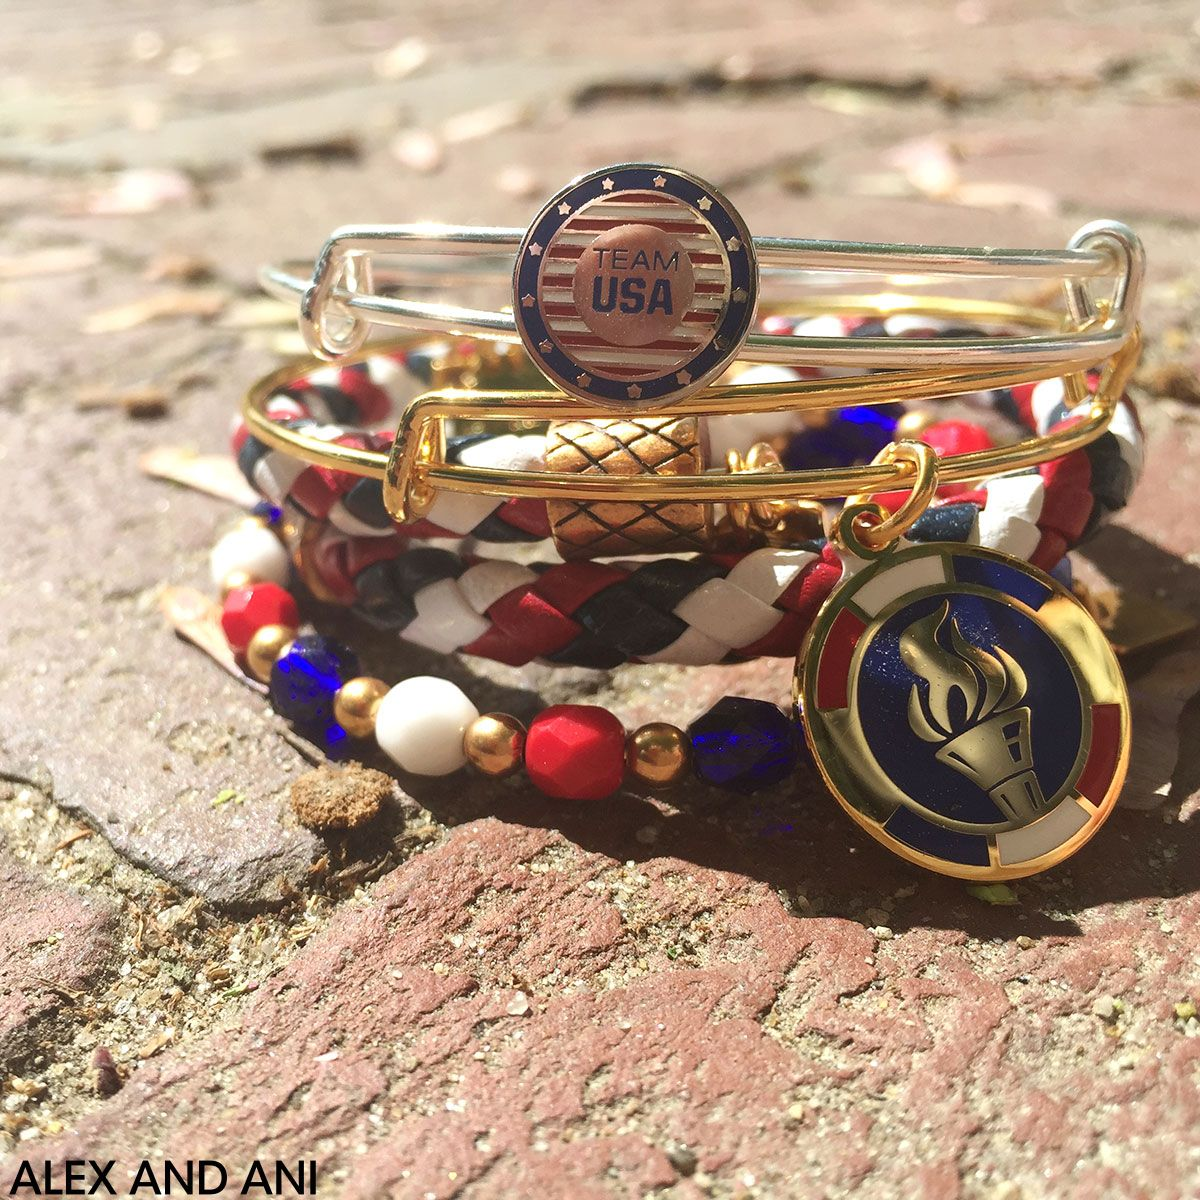 ALEX AND ANI Team USA Collection!